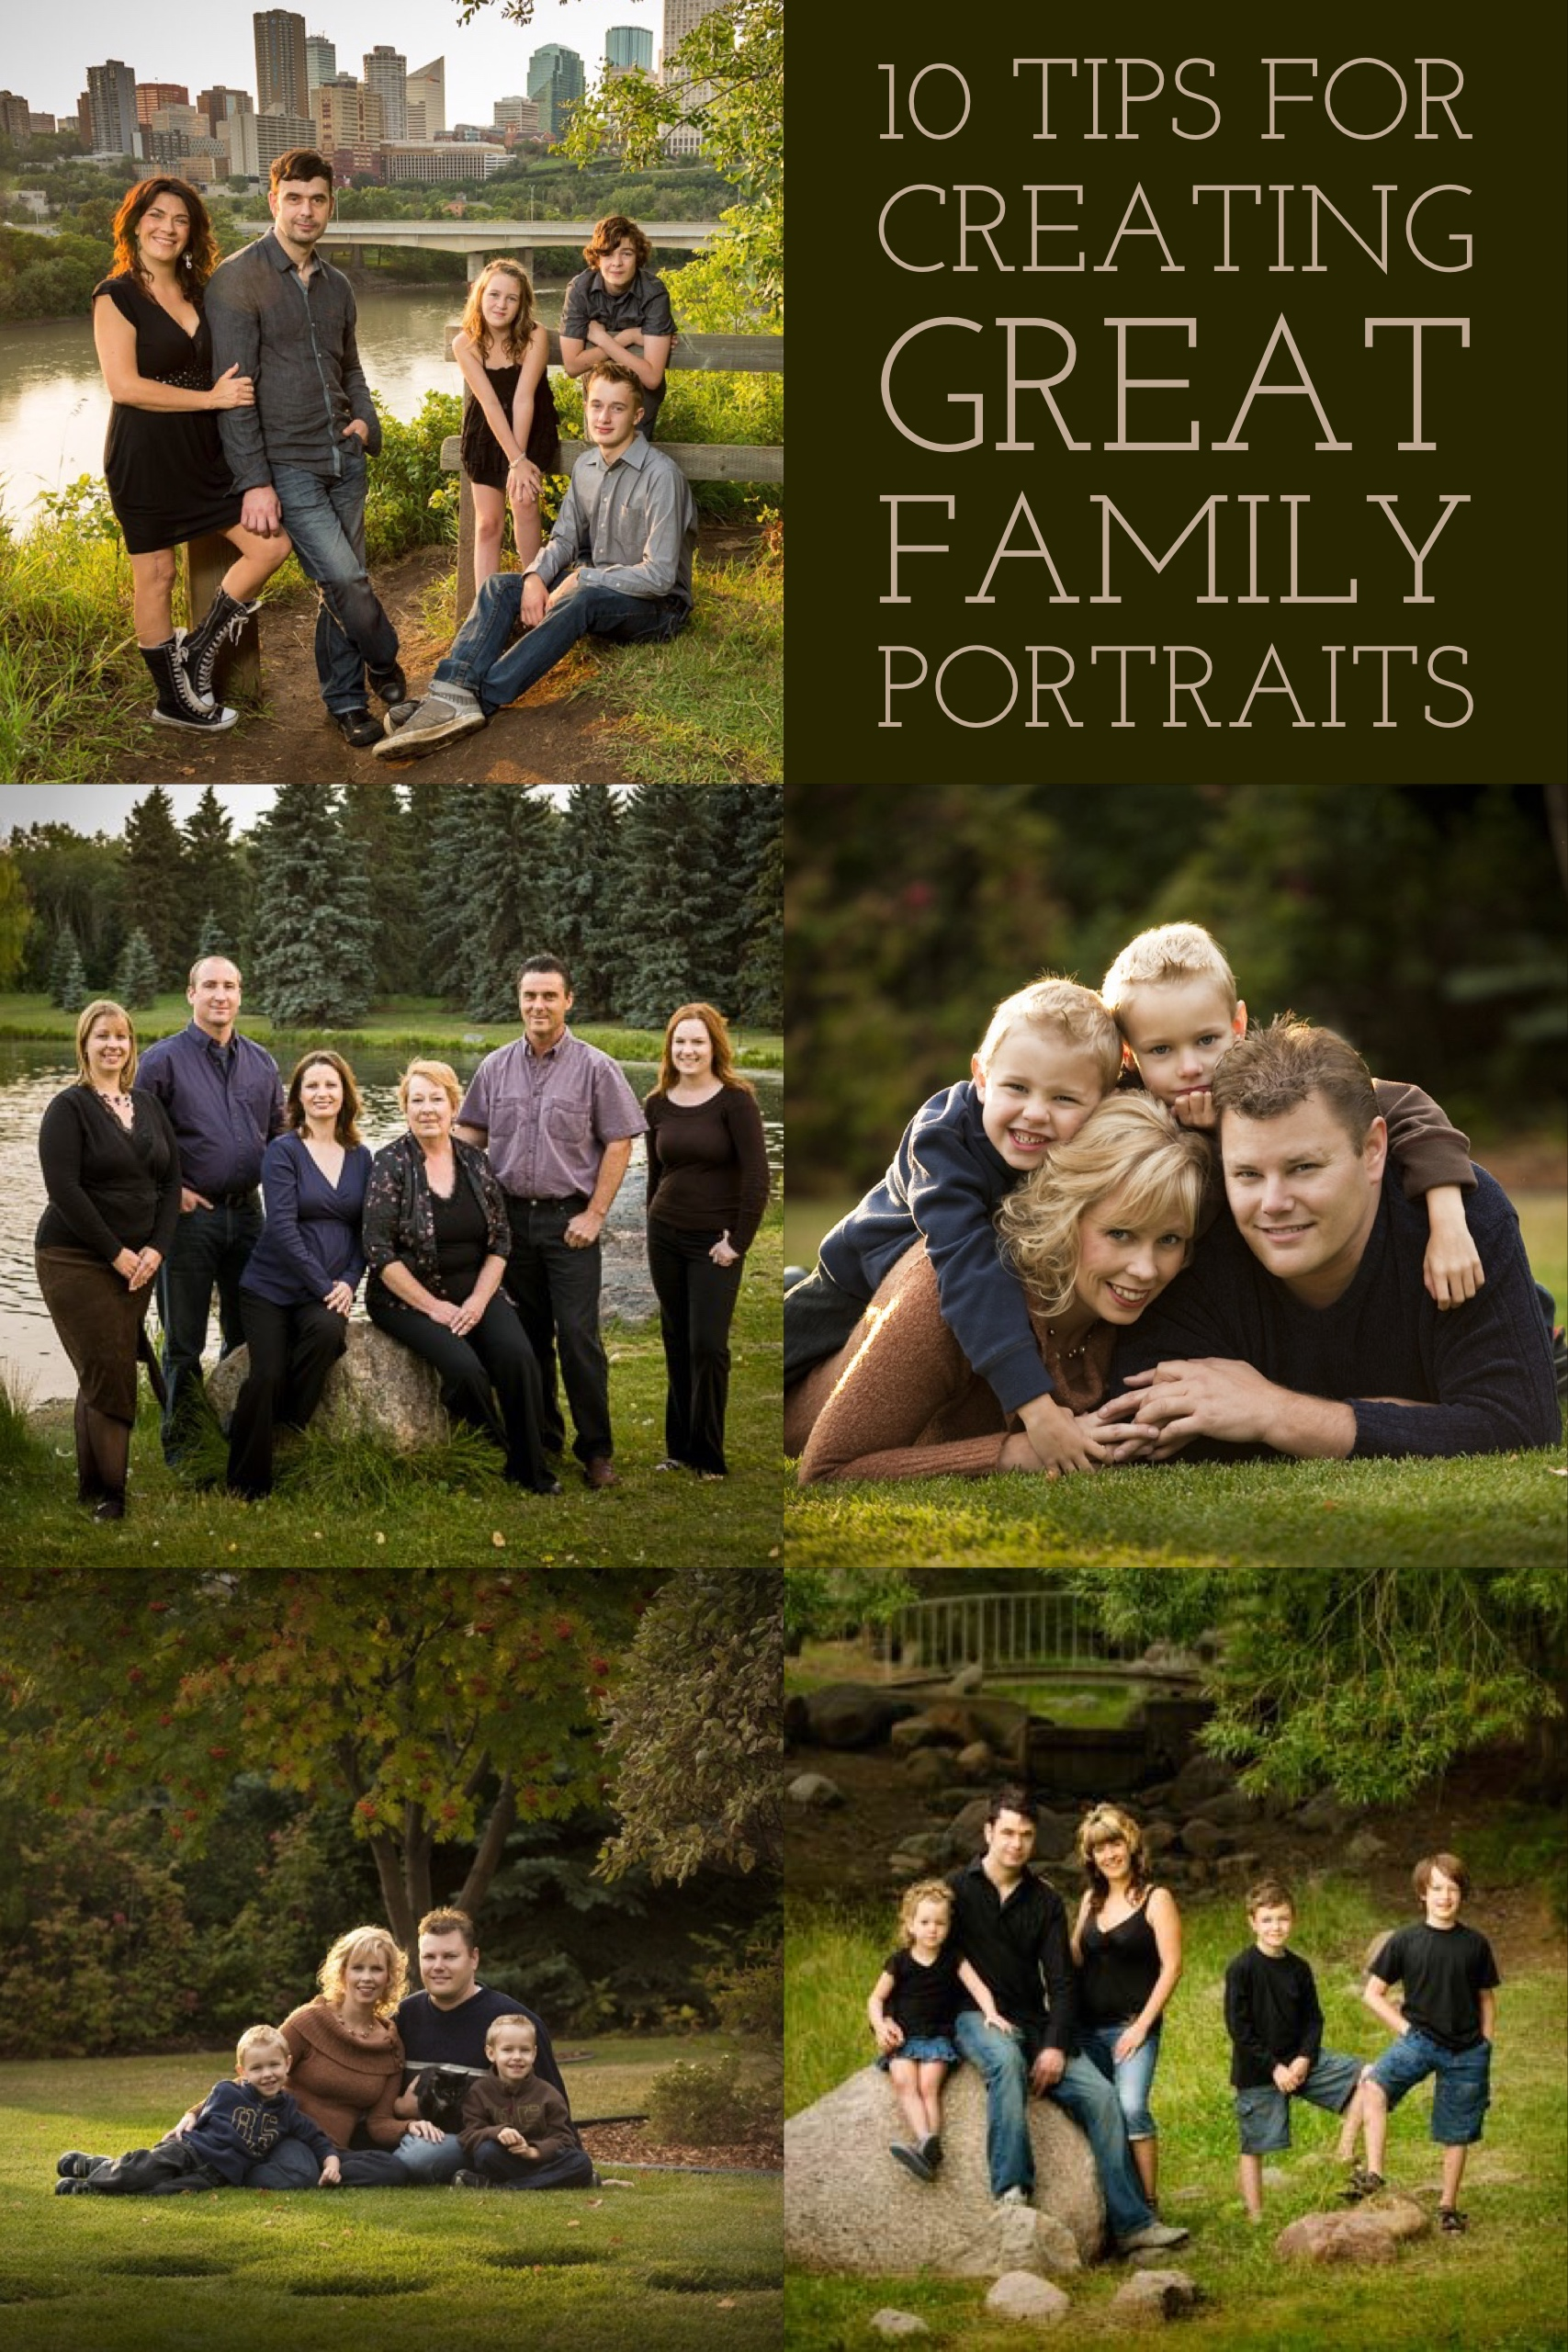 PIN IT If Youre On Pinterest And Want To Save This Family Portrait Tips Tutorial Heres An Image Just For You